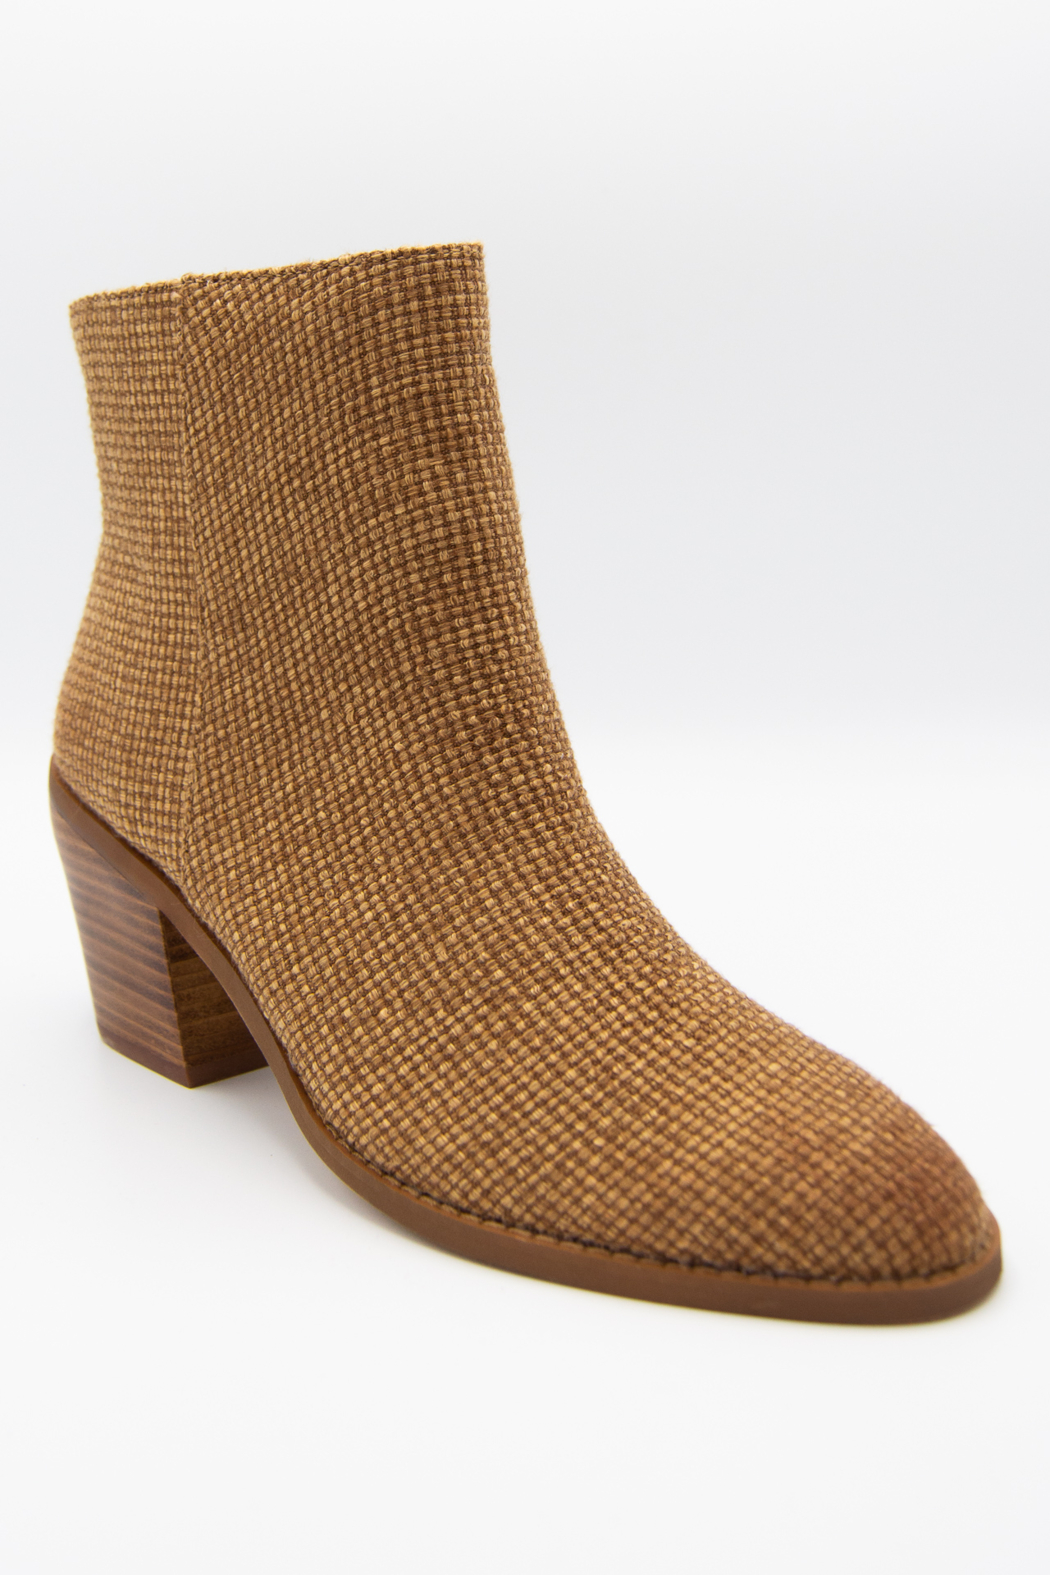 Band Of Gypsies Loveland Woven Jute Canvas Booties - Front Full Image